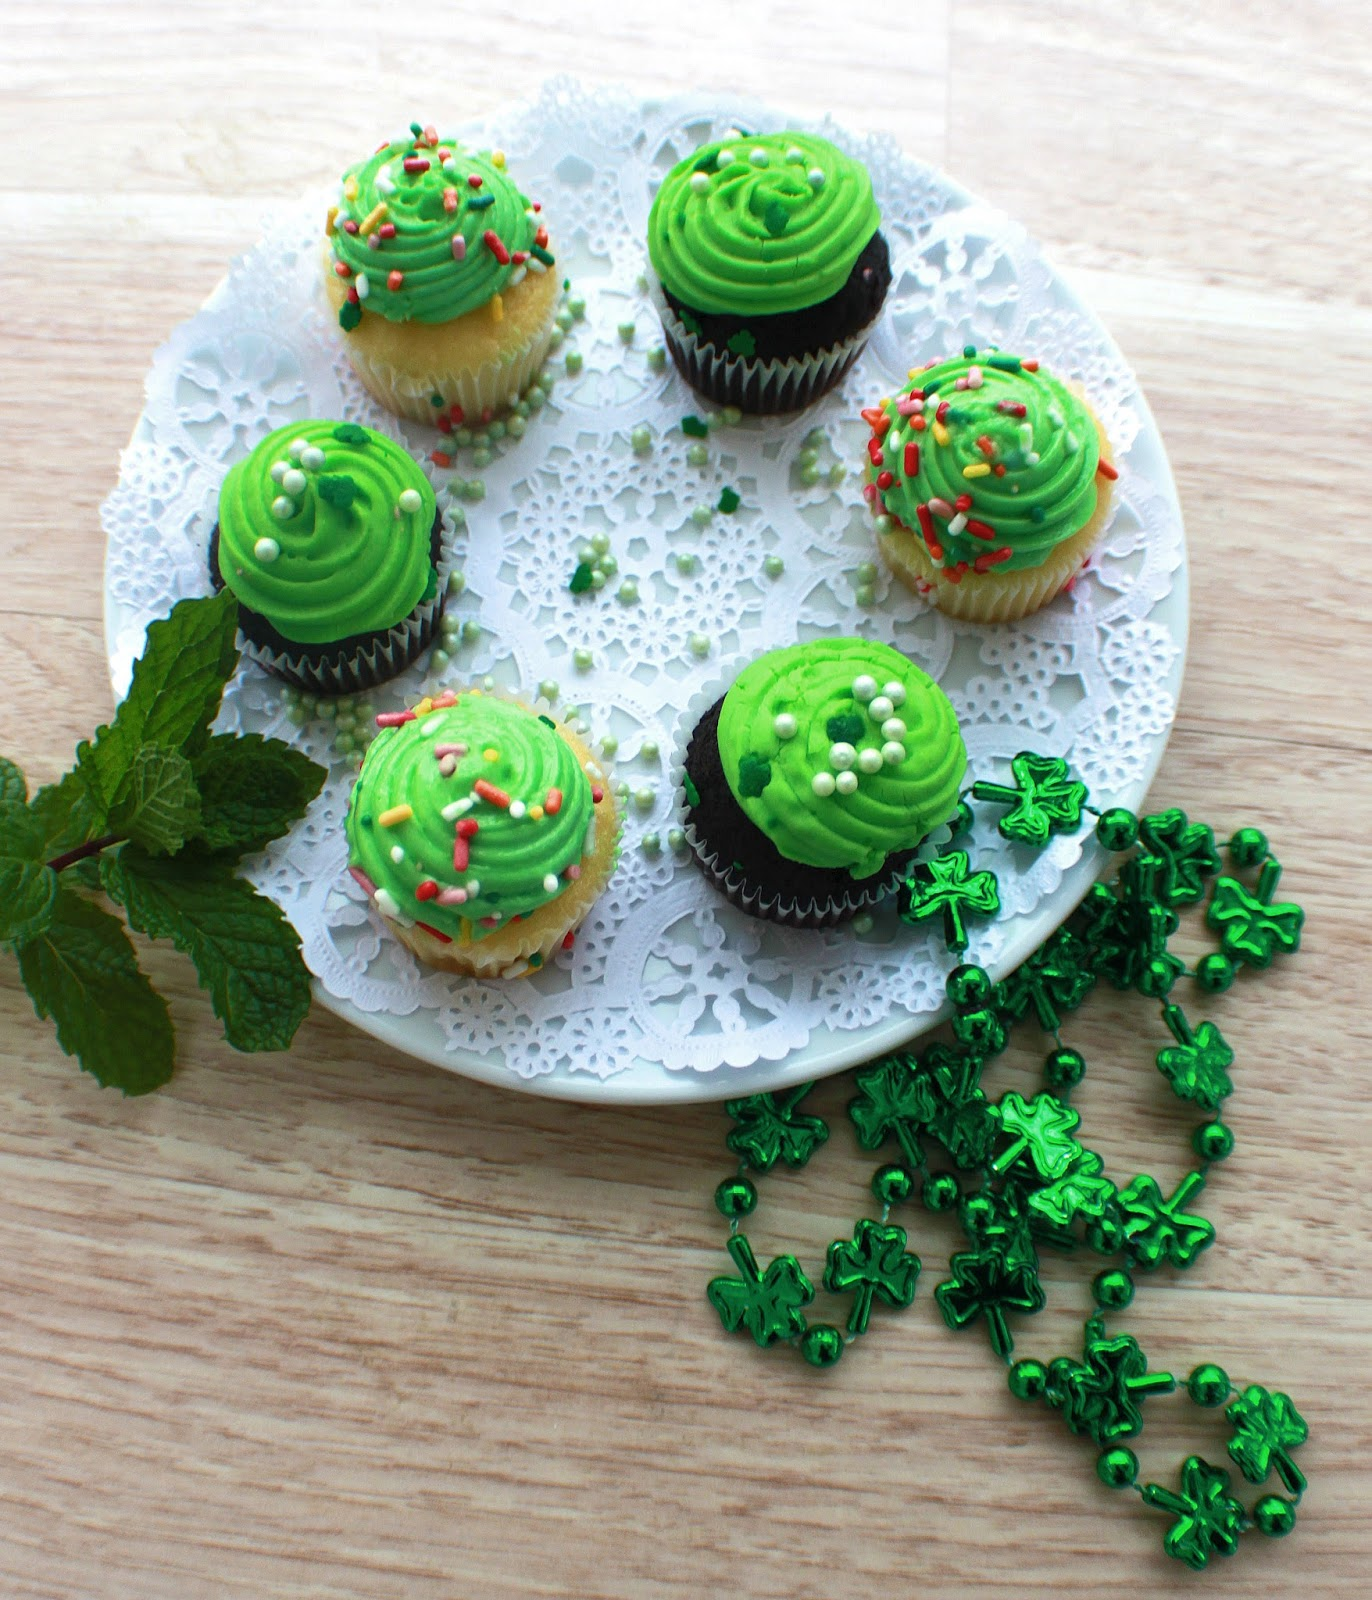 vanilla irish cream cupcakes and chocolate stout beer cupcakes